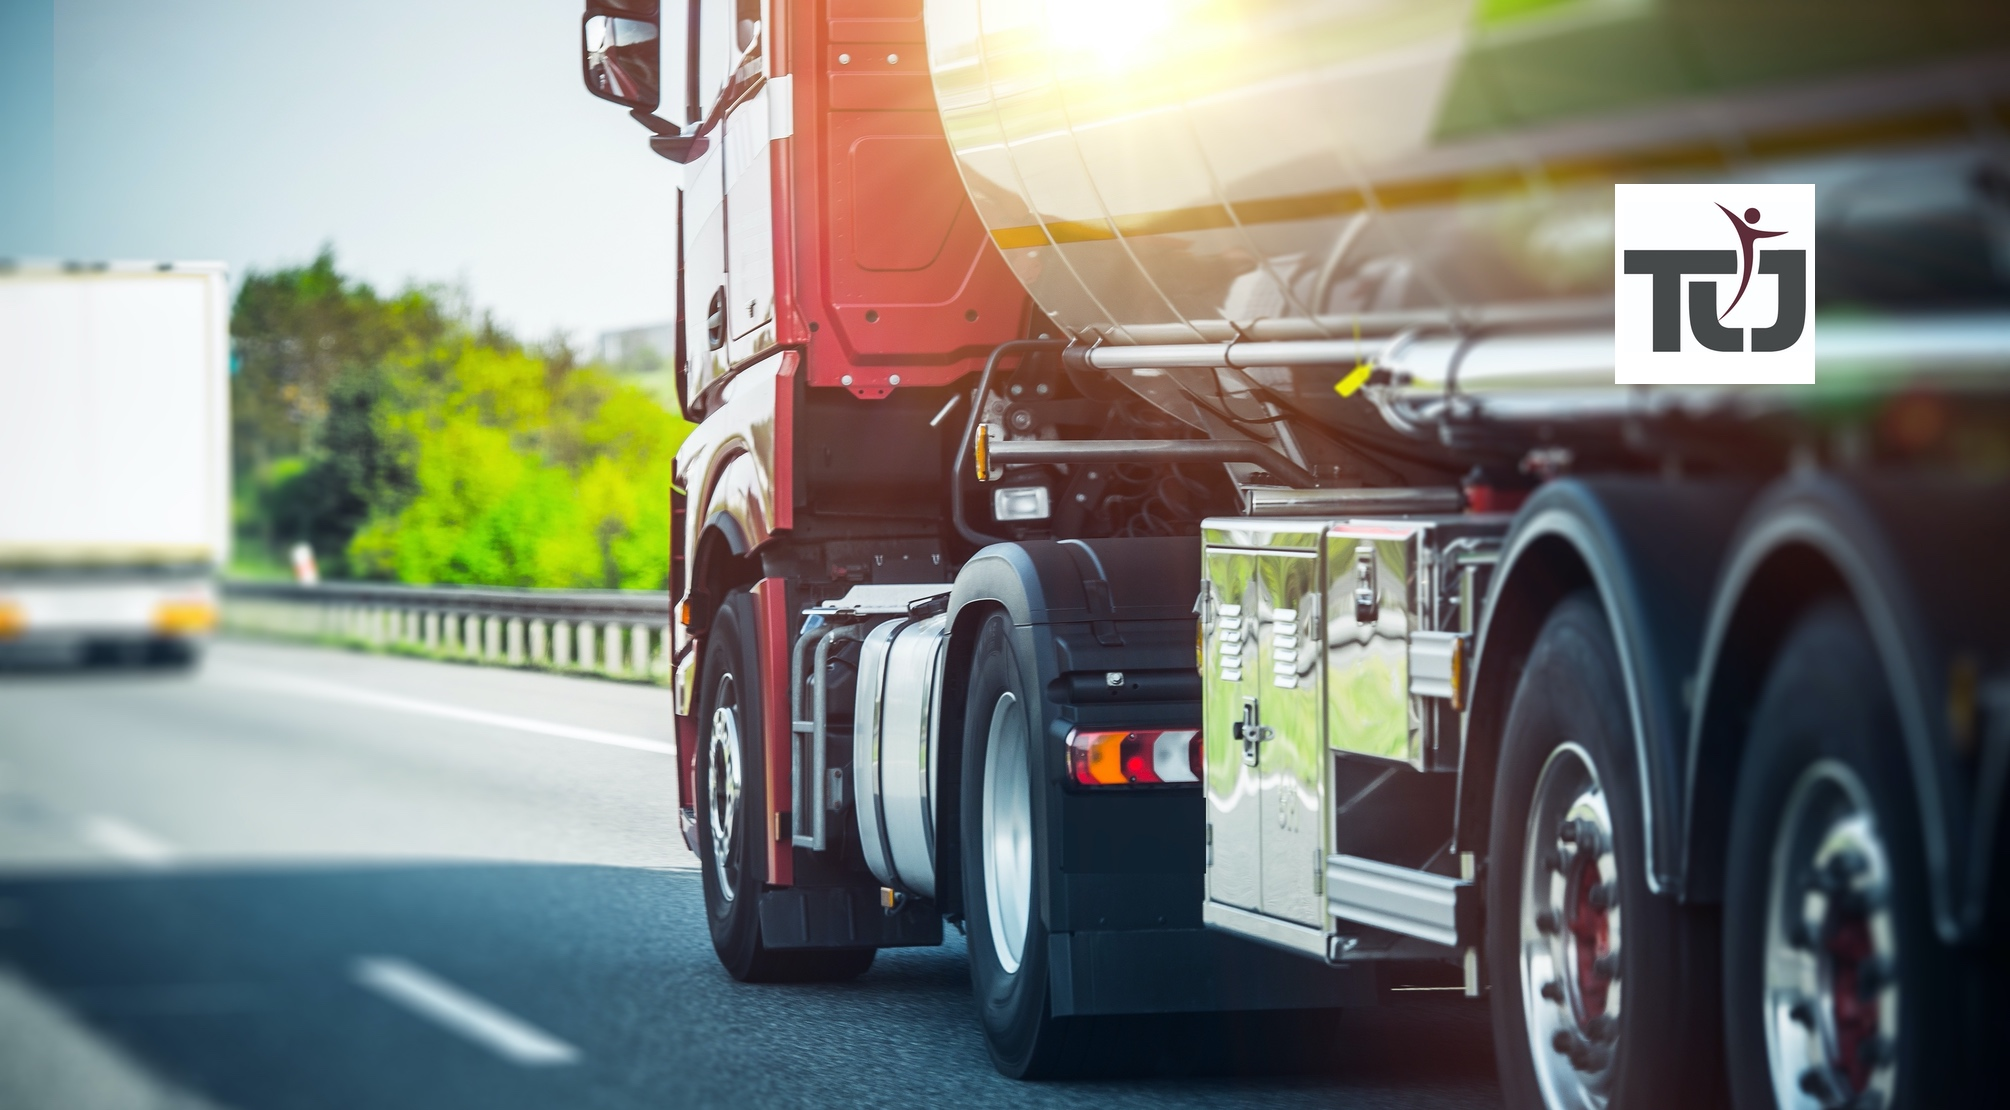 In the right lane: Lessons from the DVSA